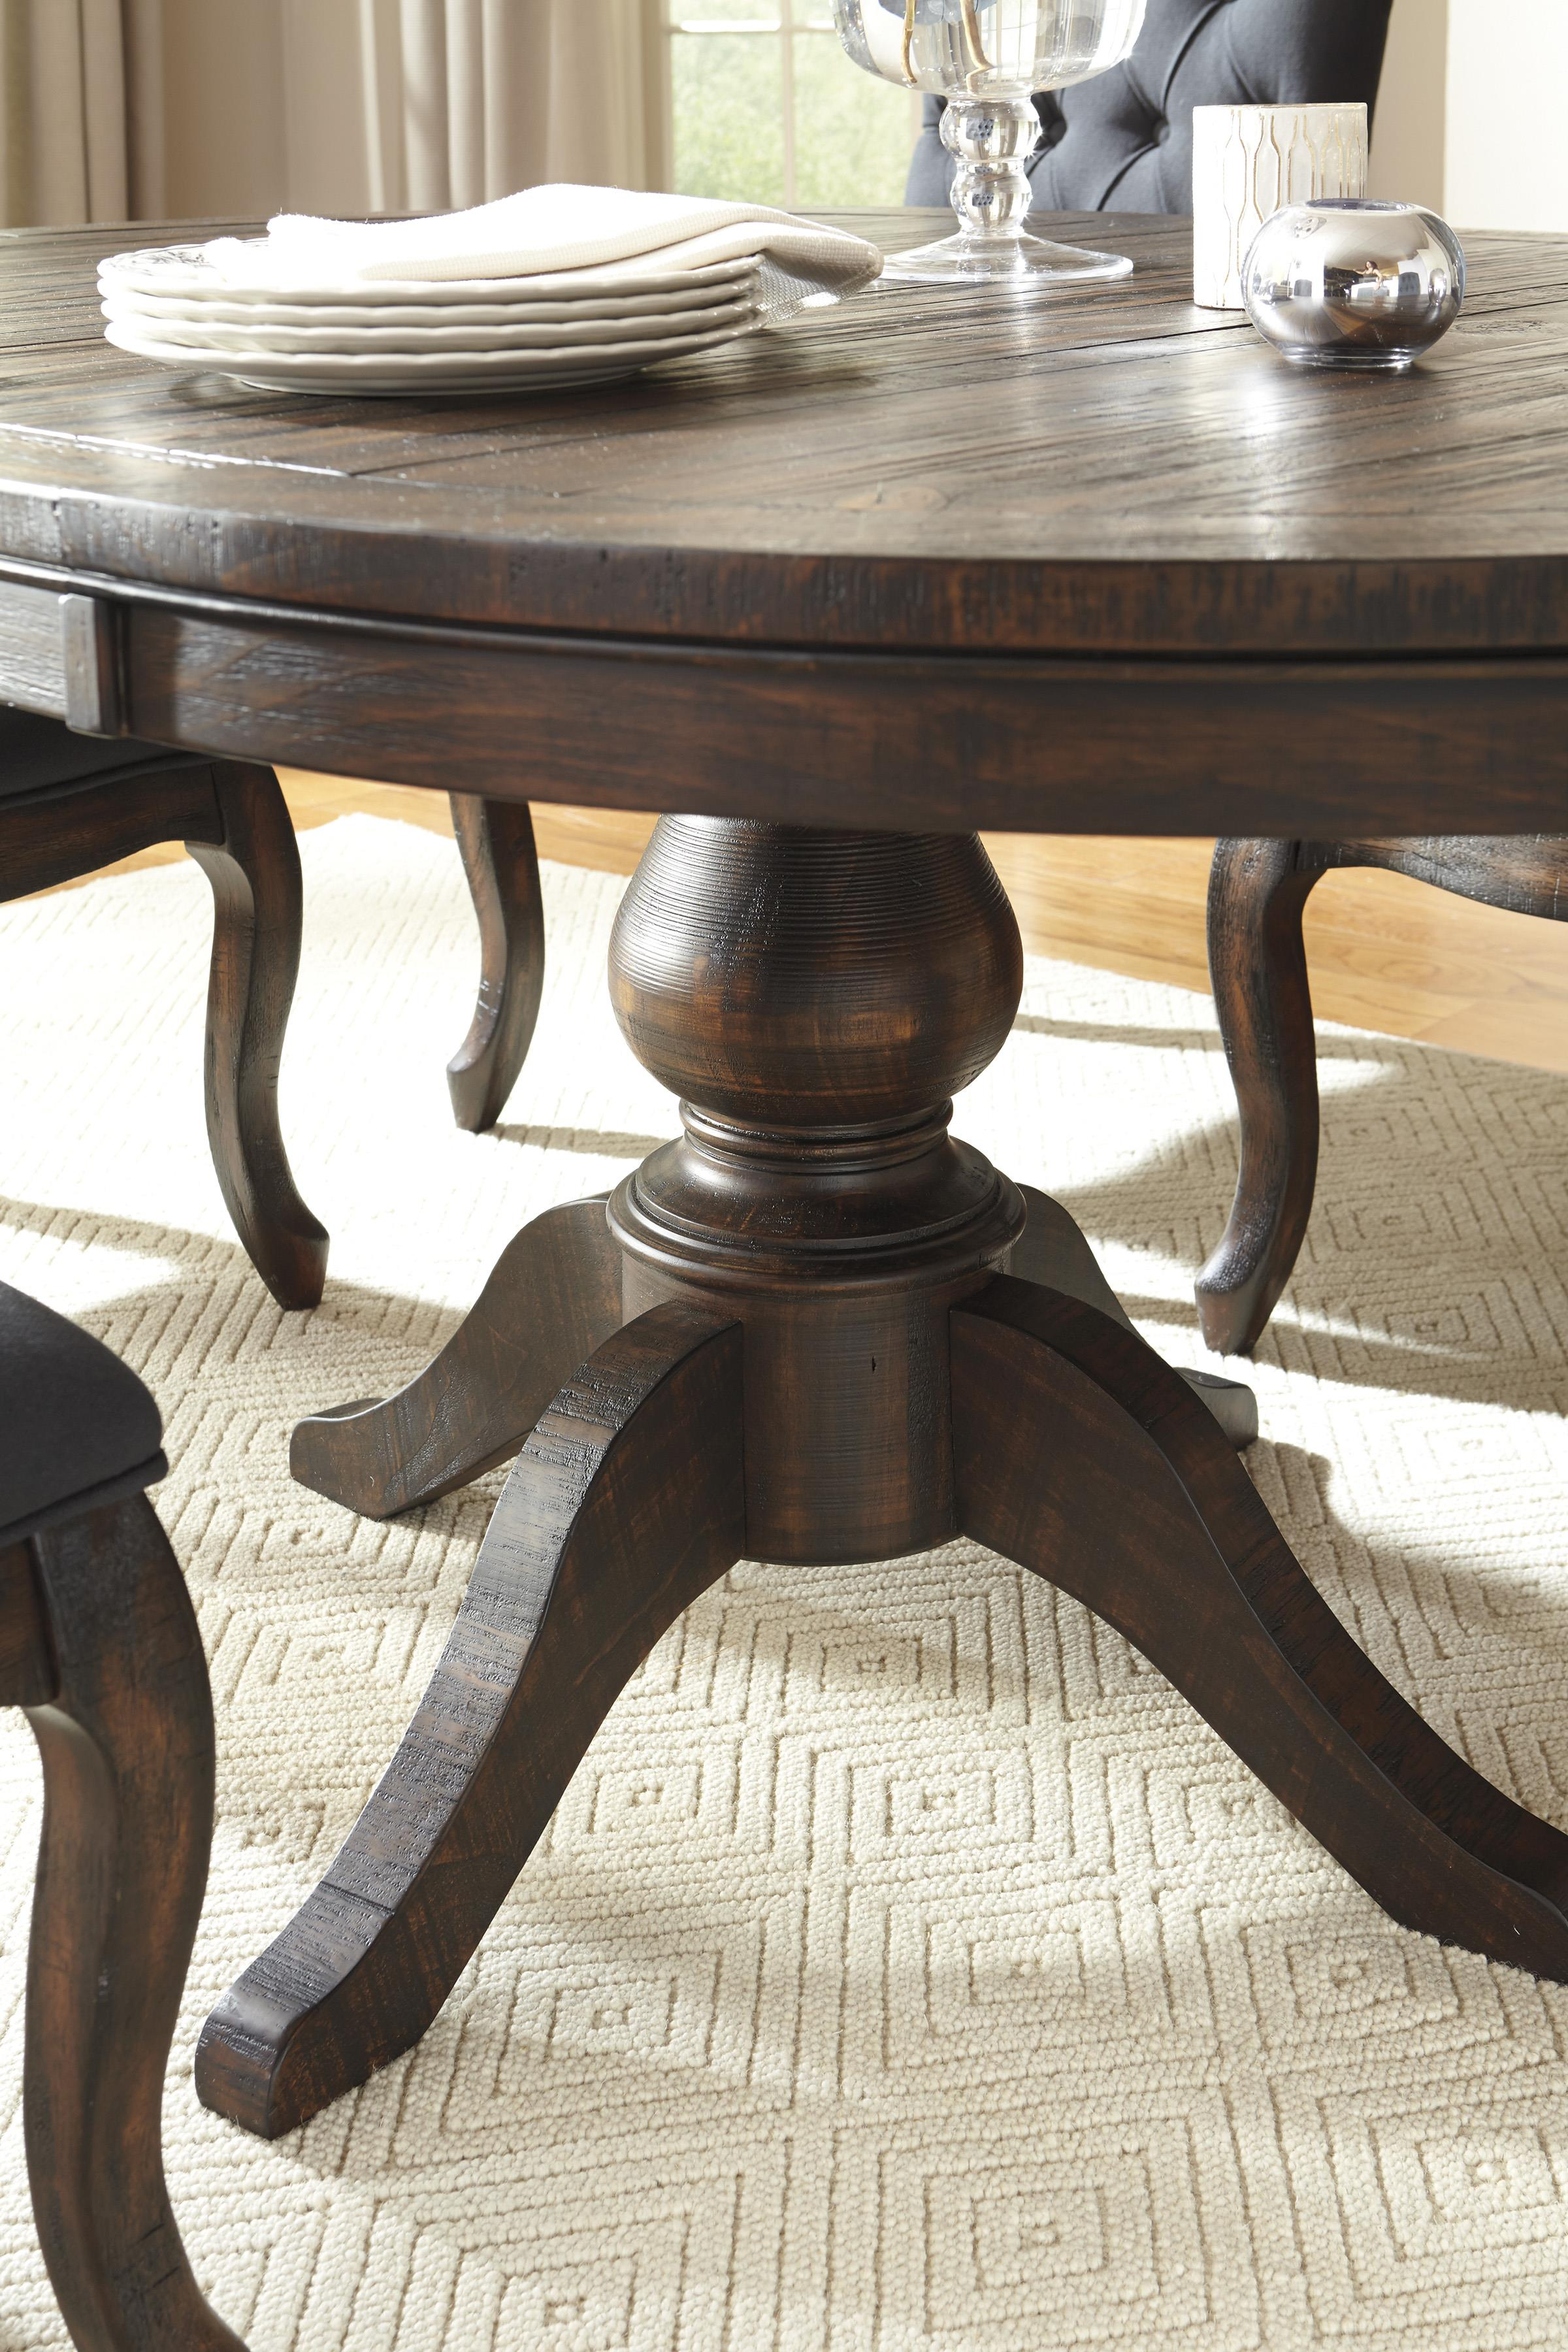 7-Piece Oval Dining Table Set with Wood Seat Side Chairs by ...